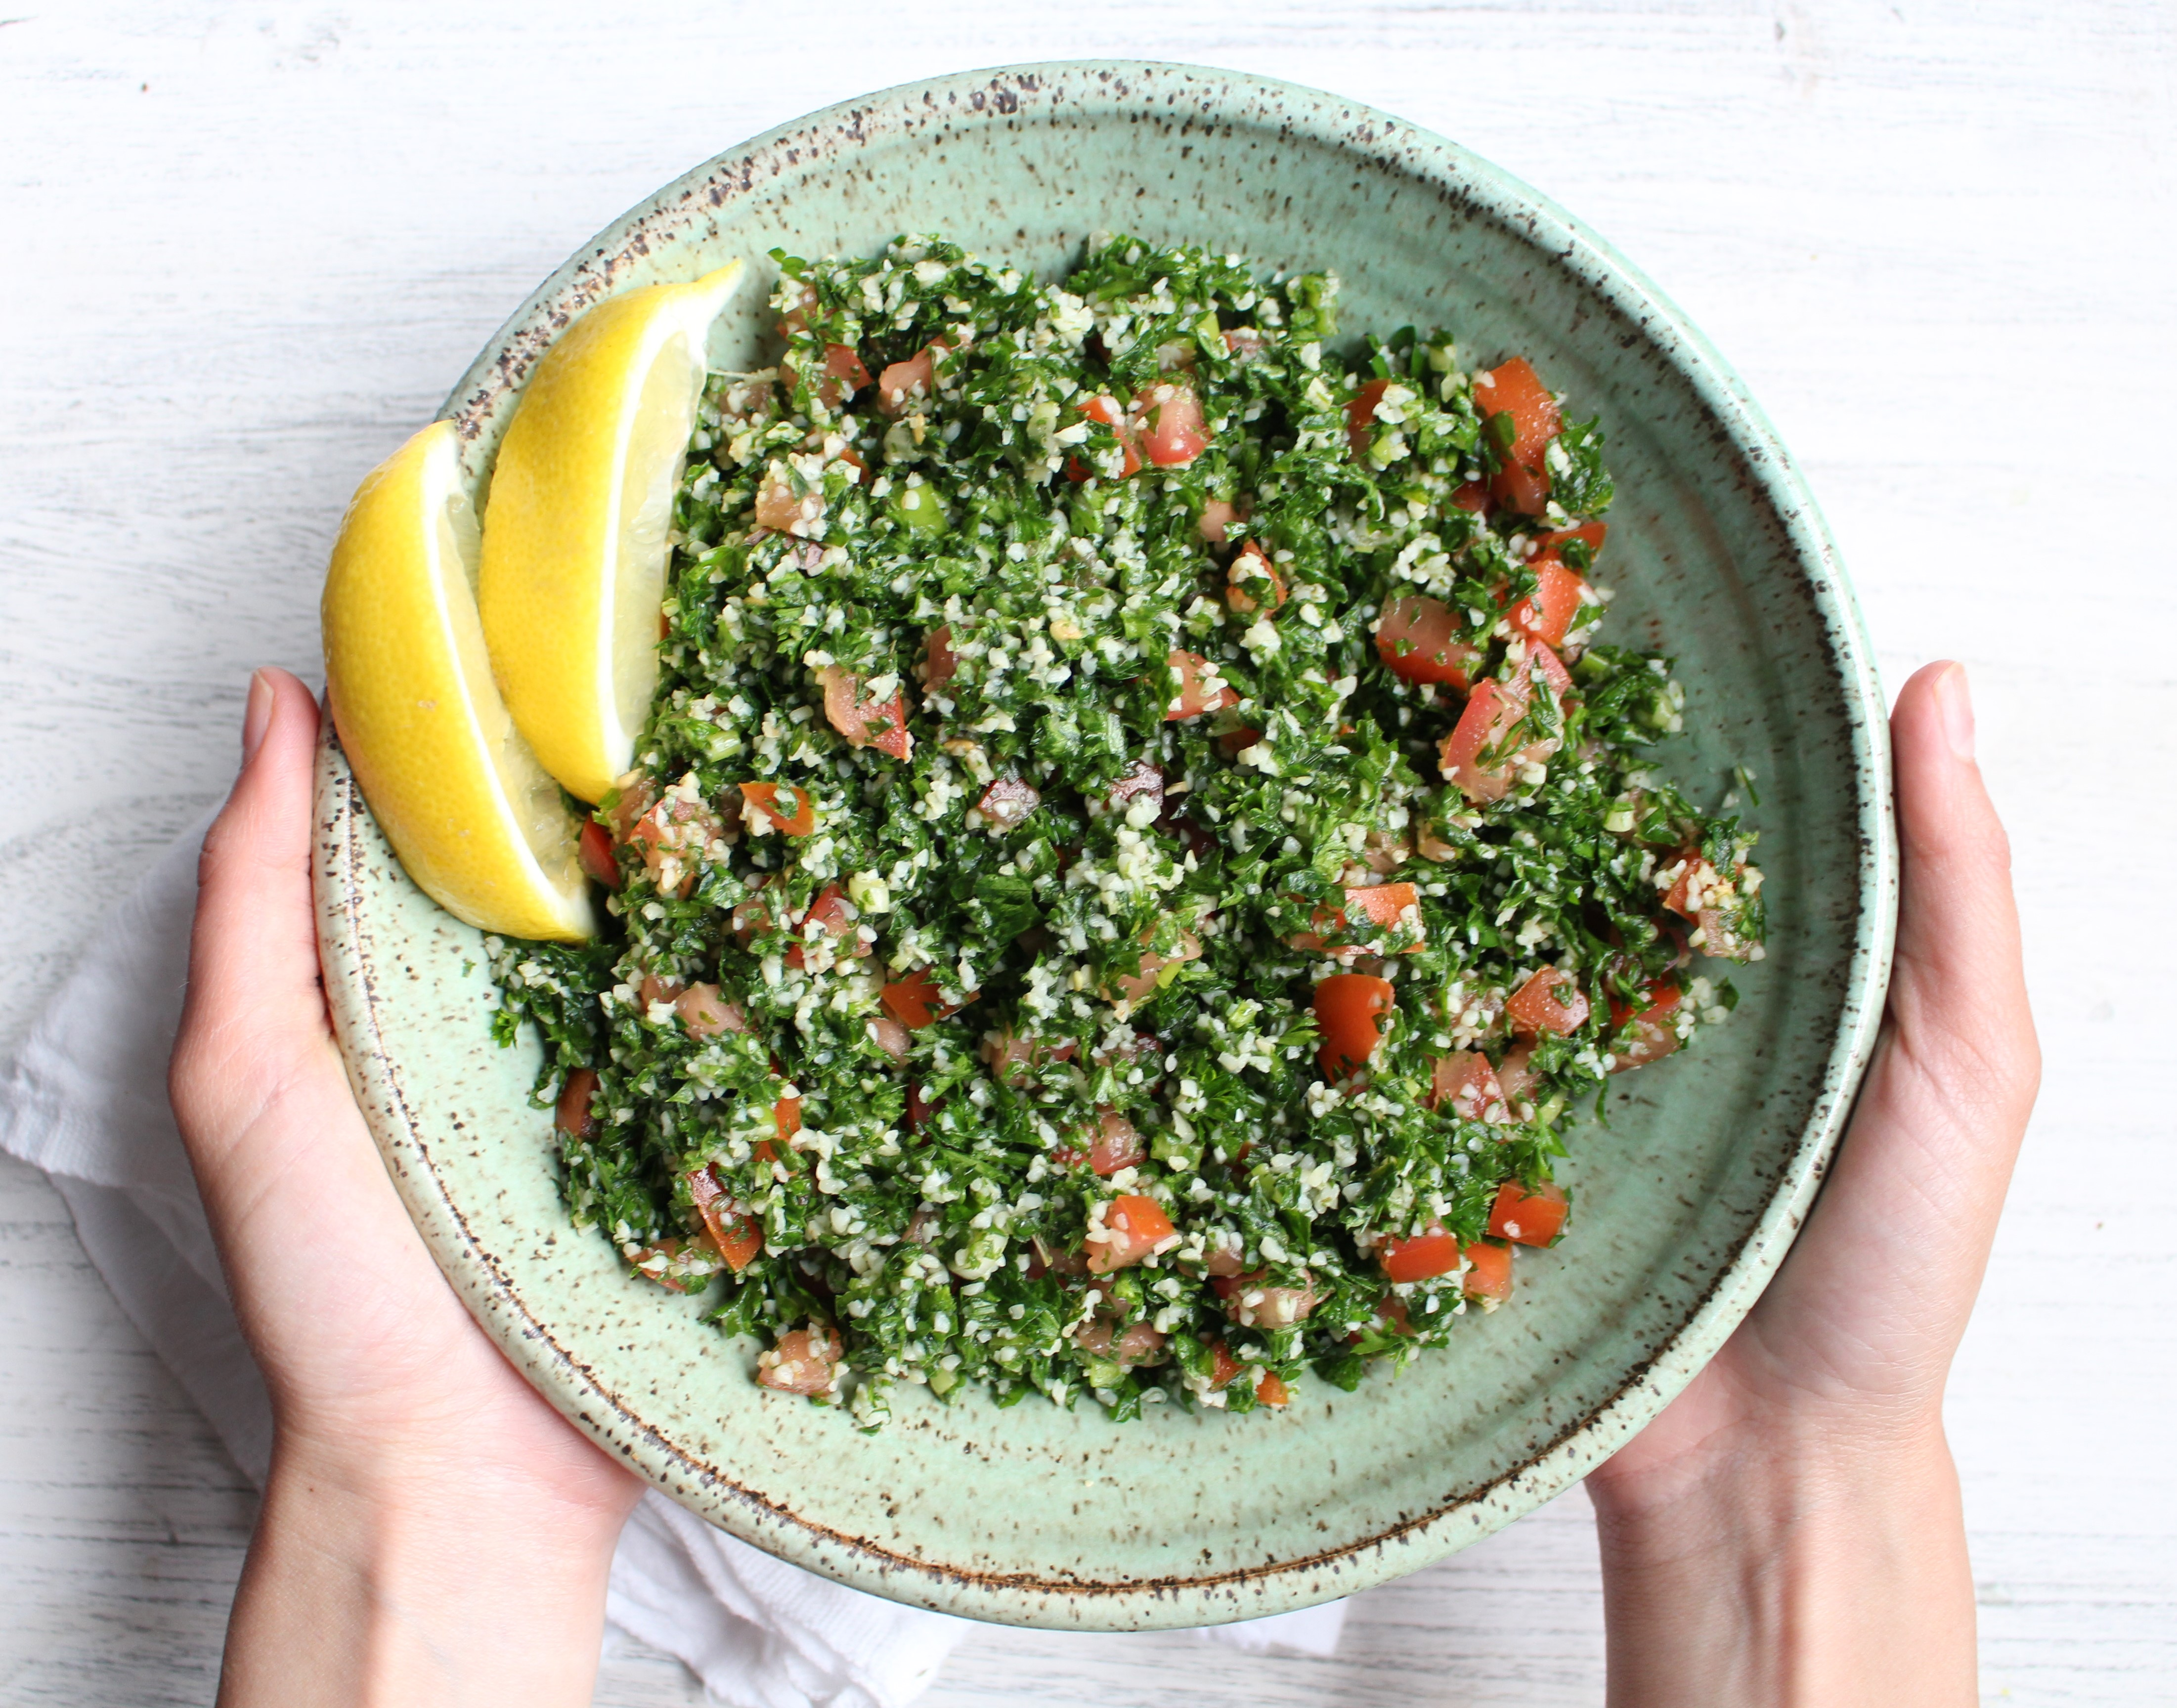 Tabbouleh - a refreshing and healthy Middle Eastern salad made with parsley, tomatoes, and bulgur. Dressed with lemon juice, olive oil, and mint, this salad is great by itself, in lettuce cups, or with avocado!